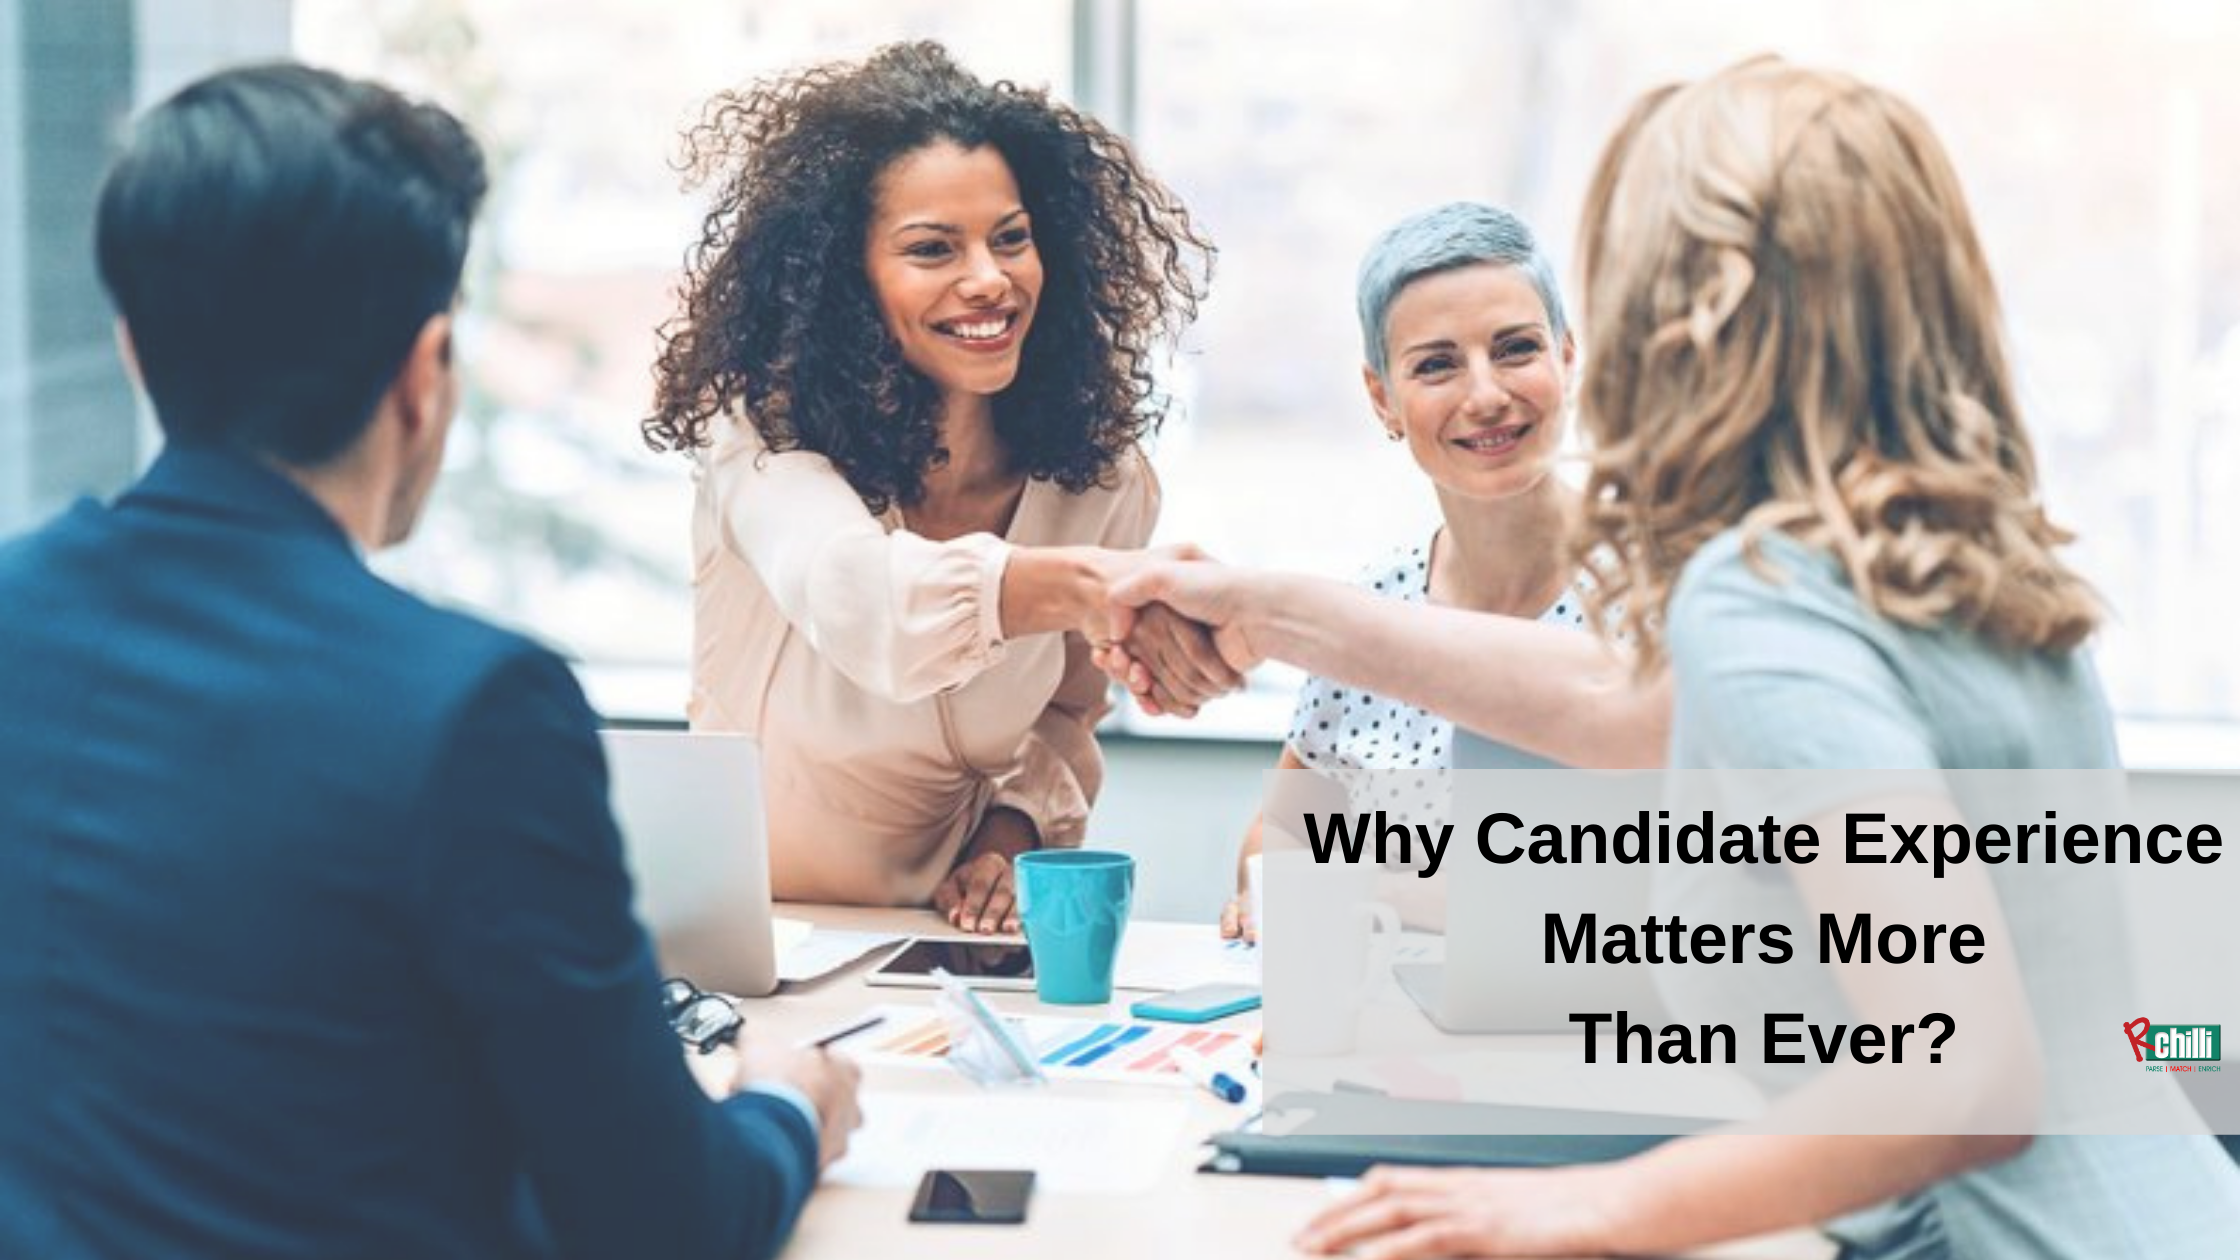 What Does Losing Quality Candidates Cost to You?